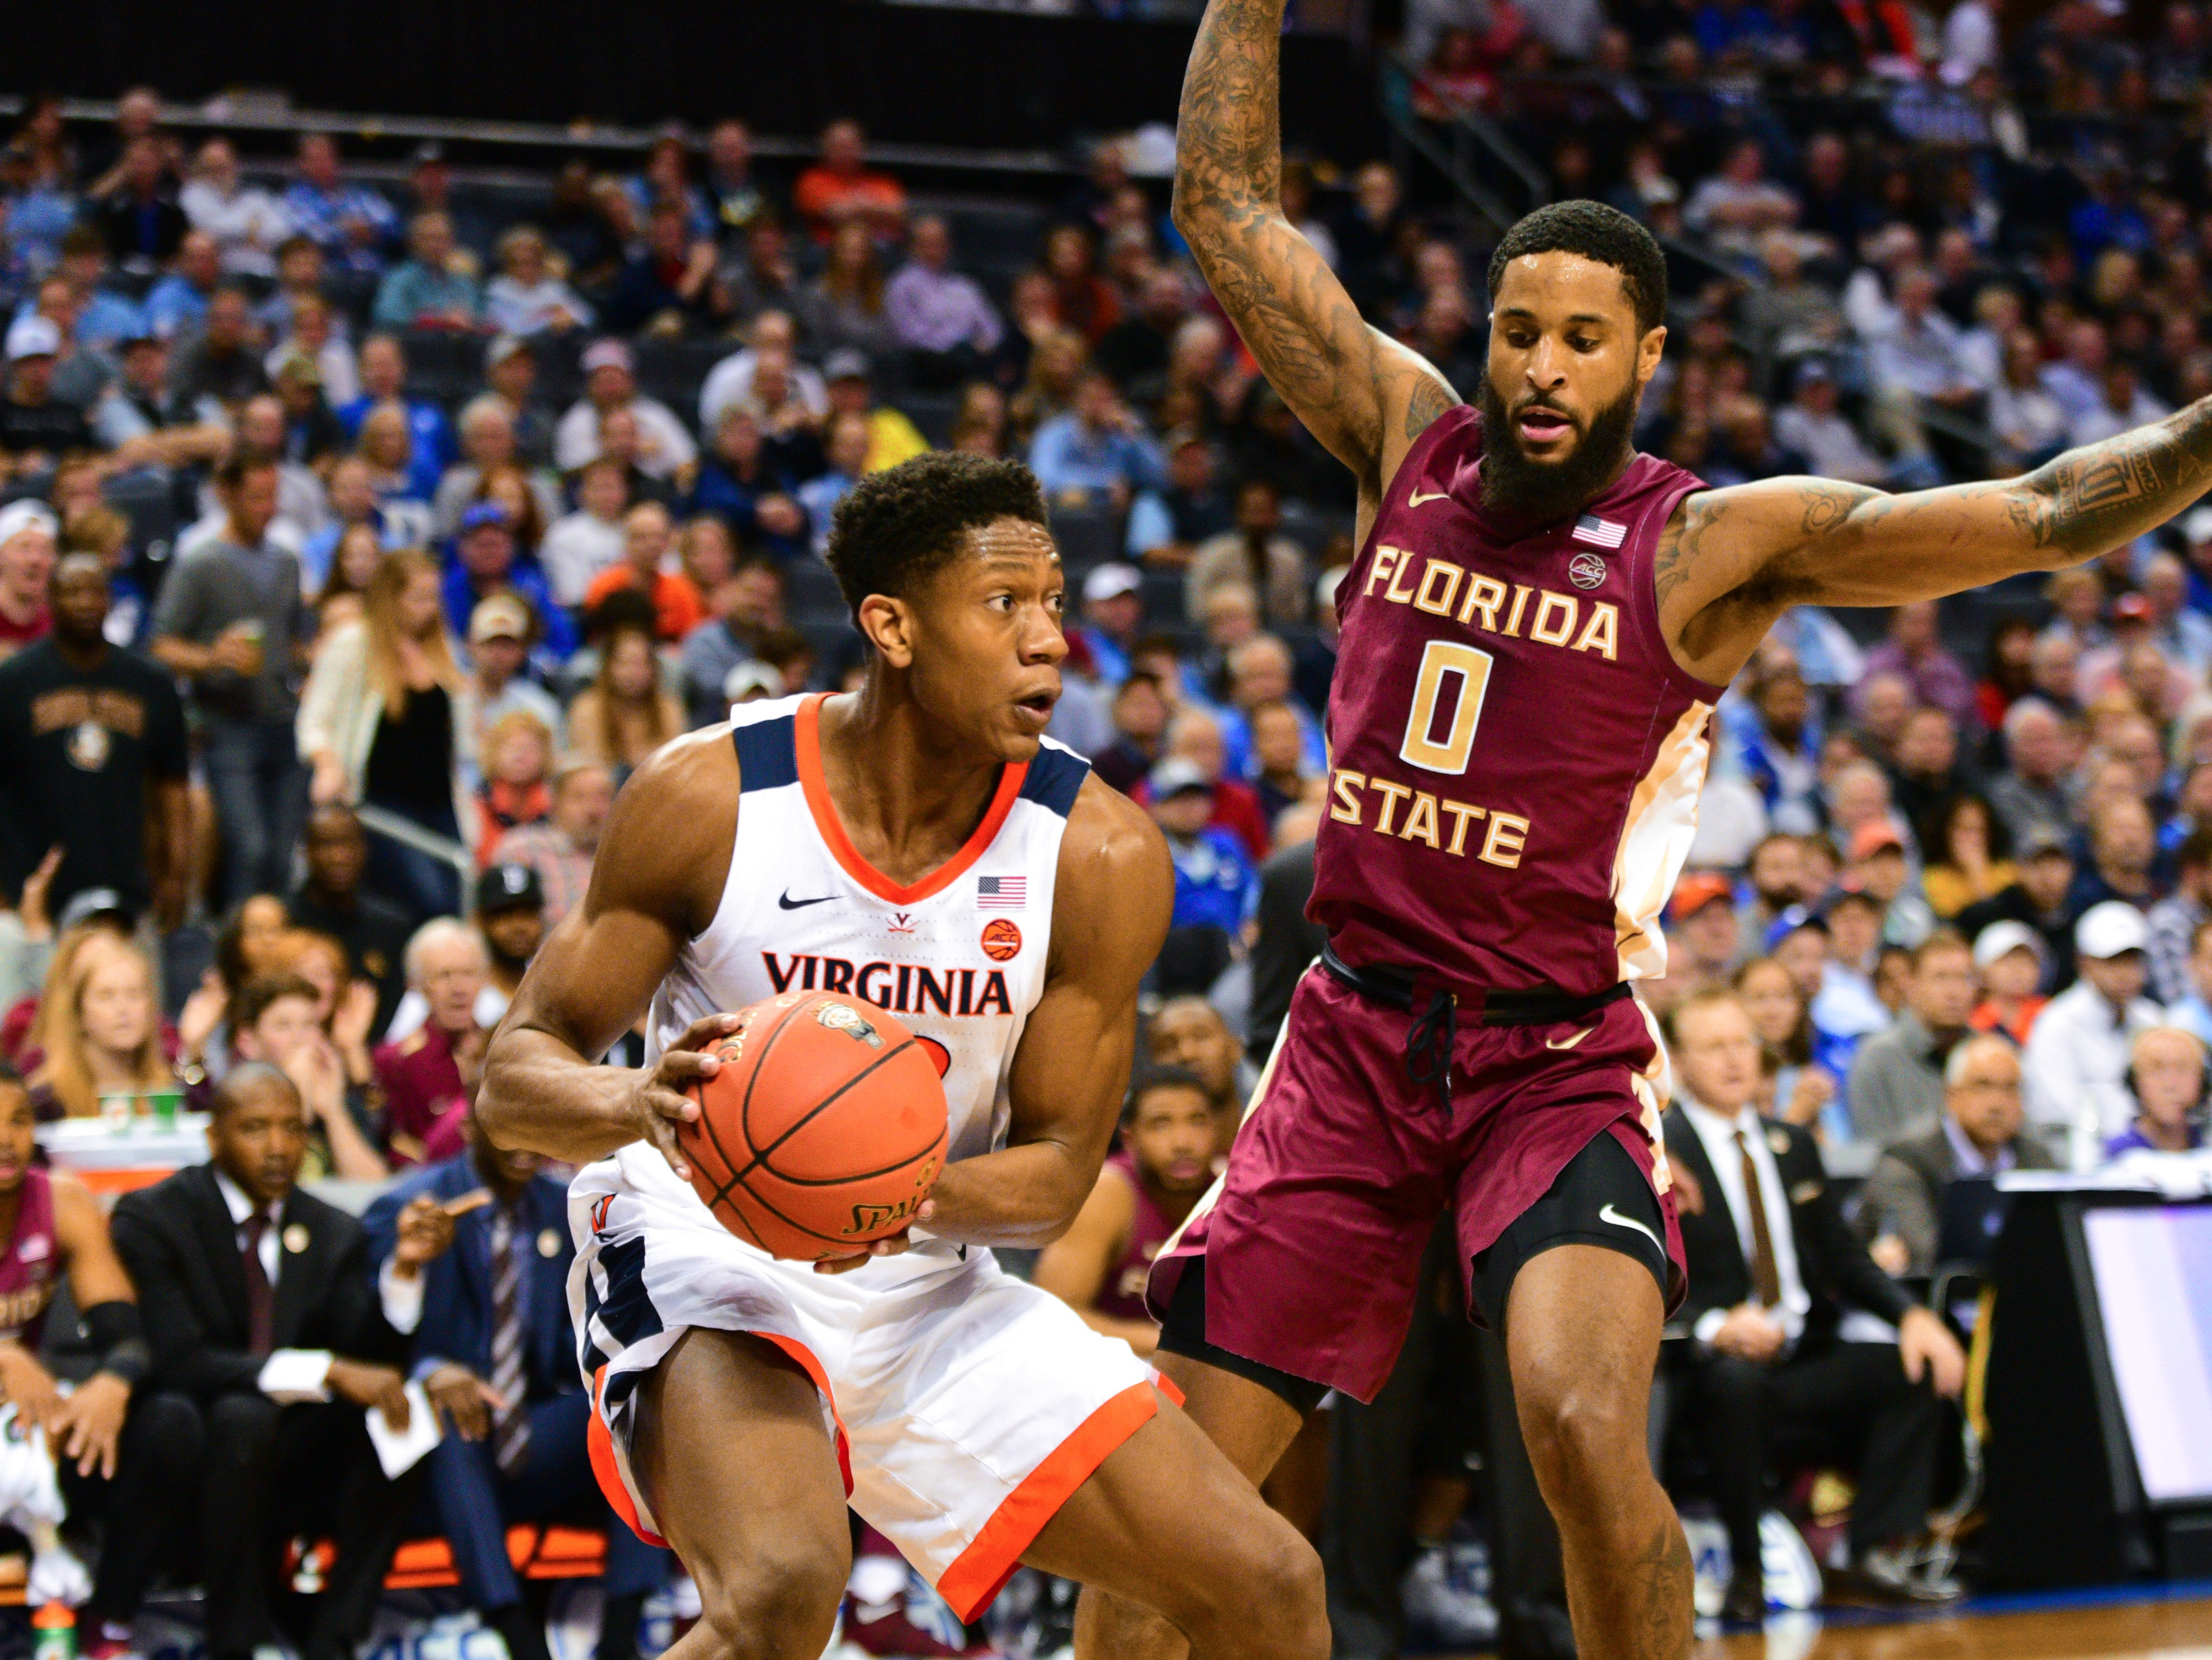 Florida State redshirt senior guard Phil Cofer, right, blocks Virginia redshirt sophomore guard De'andre Hunter  during the first half of the ACC Tournament Semifinals at the Spectrum Center in Charlotte on Friday.